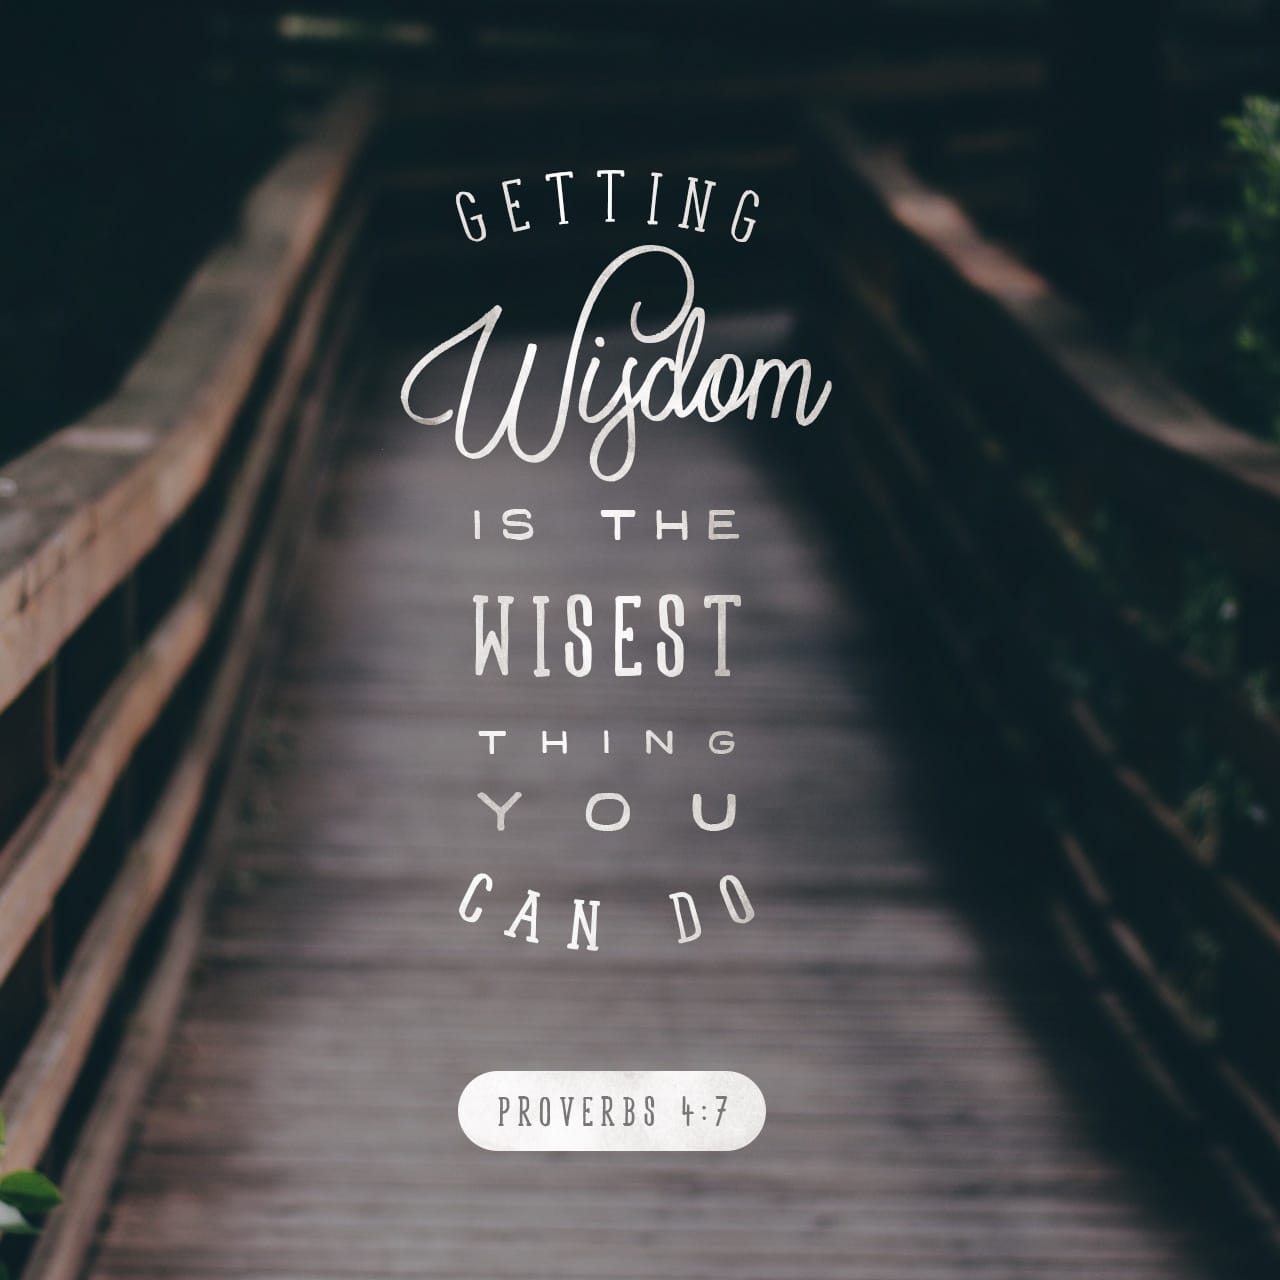 Proverbs 4:7 Getting wisdom is the wisest thing you can do